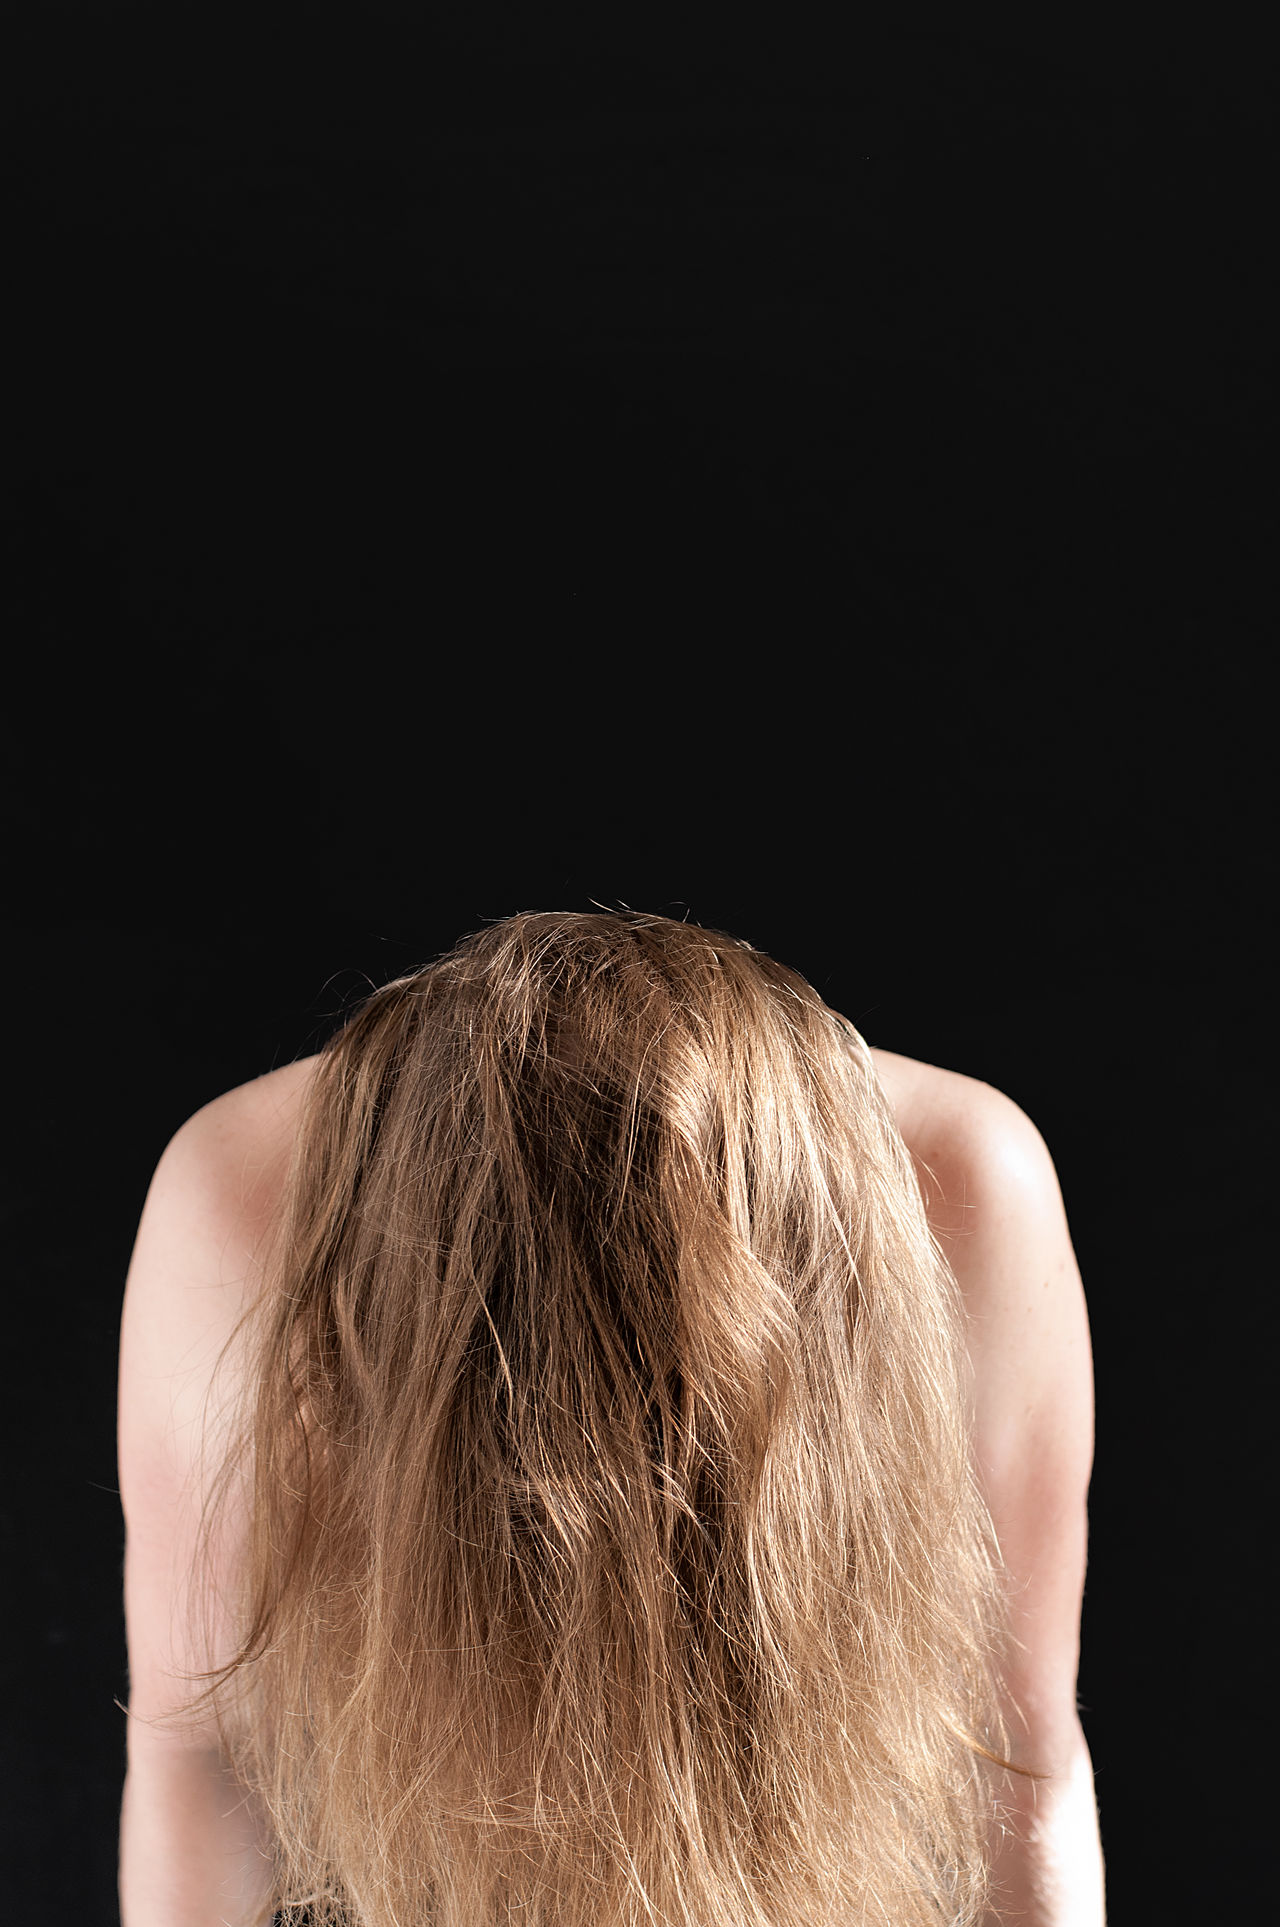 Today it feels like the weight of the world is on my shoulders. Black Background Blond Hair Day Eye4photography  EyeEm Best Shots EyeEm Gallery Human Body Part One Person People Portrait Of A Woman Shirtless Shoulders The Portraitist - 2017 EyeEm Awards Women